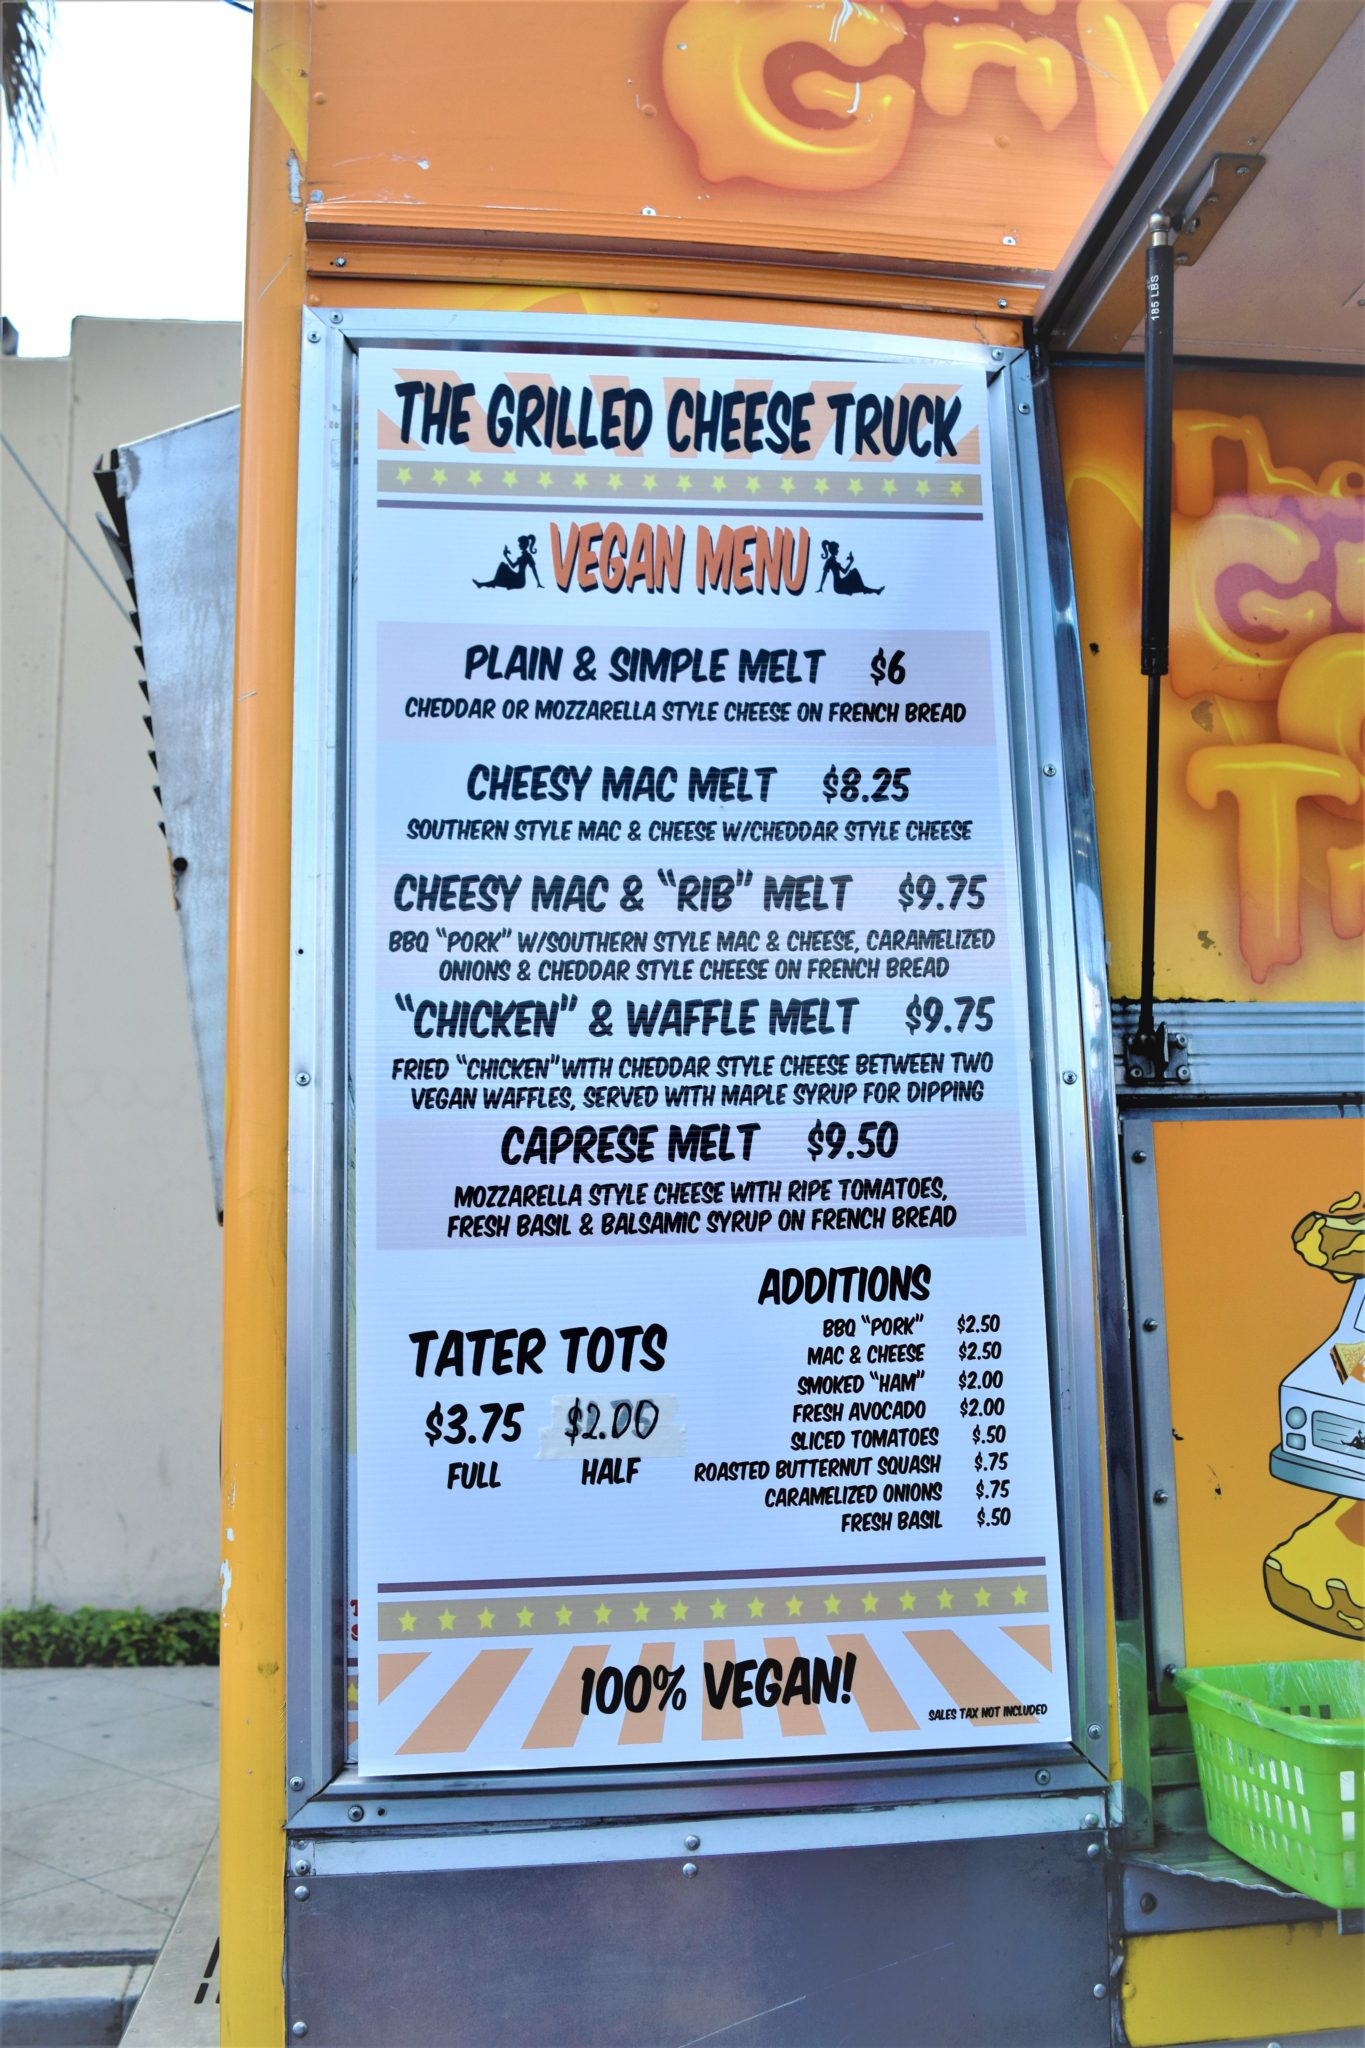 Grilled Cheese truck vegan menu, Los Angeles, California